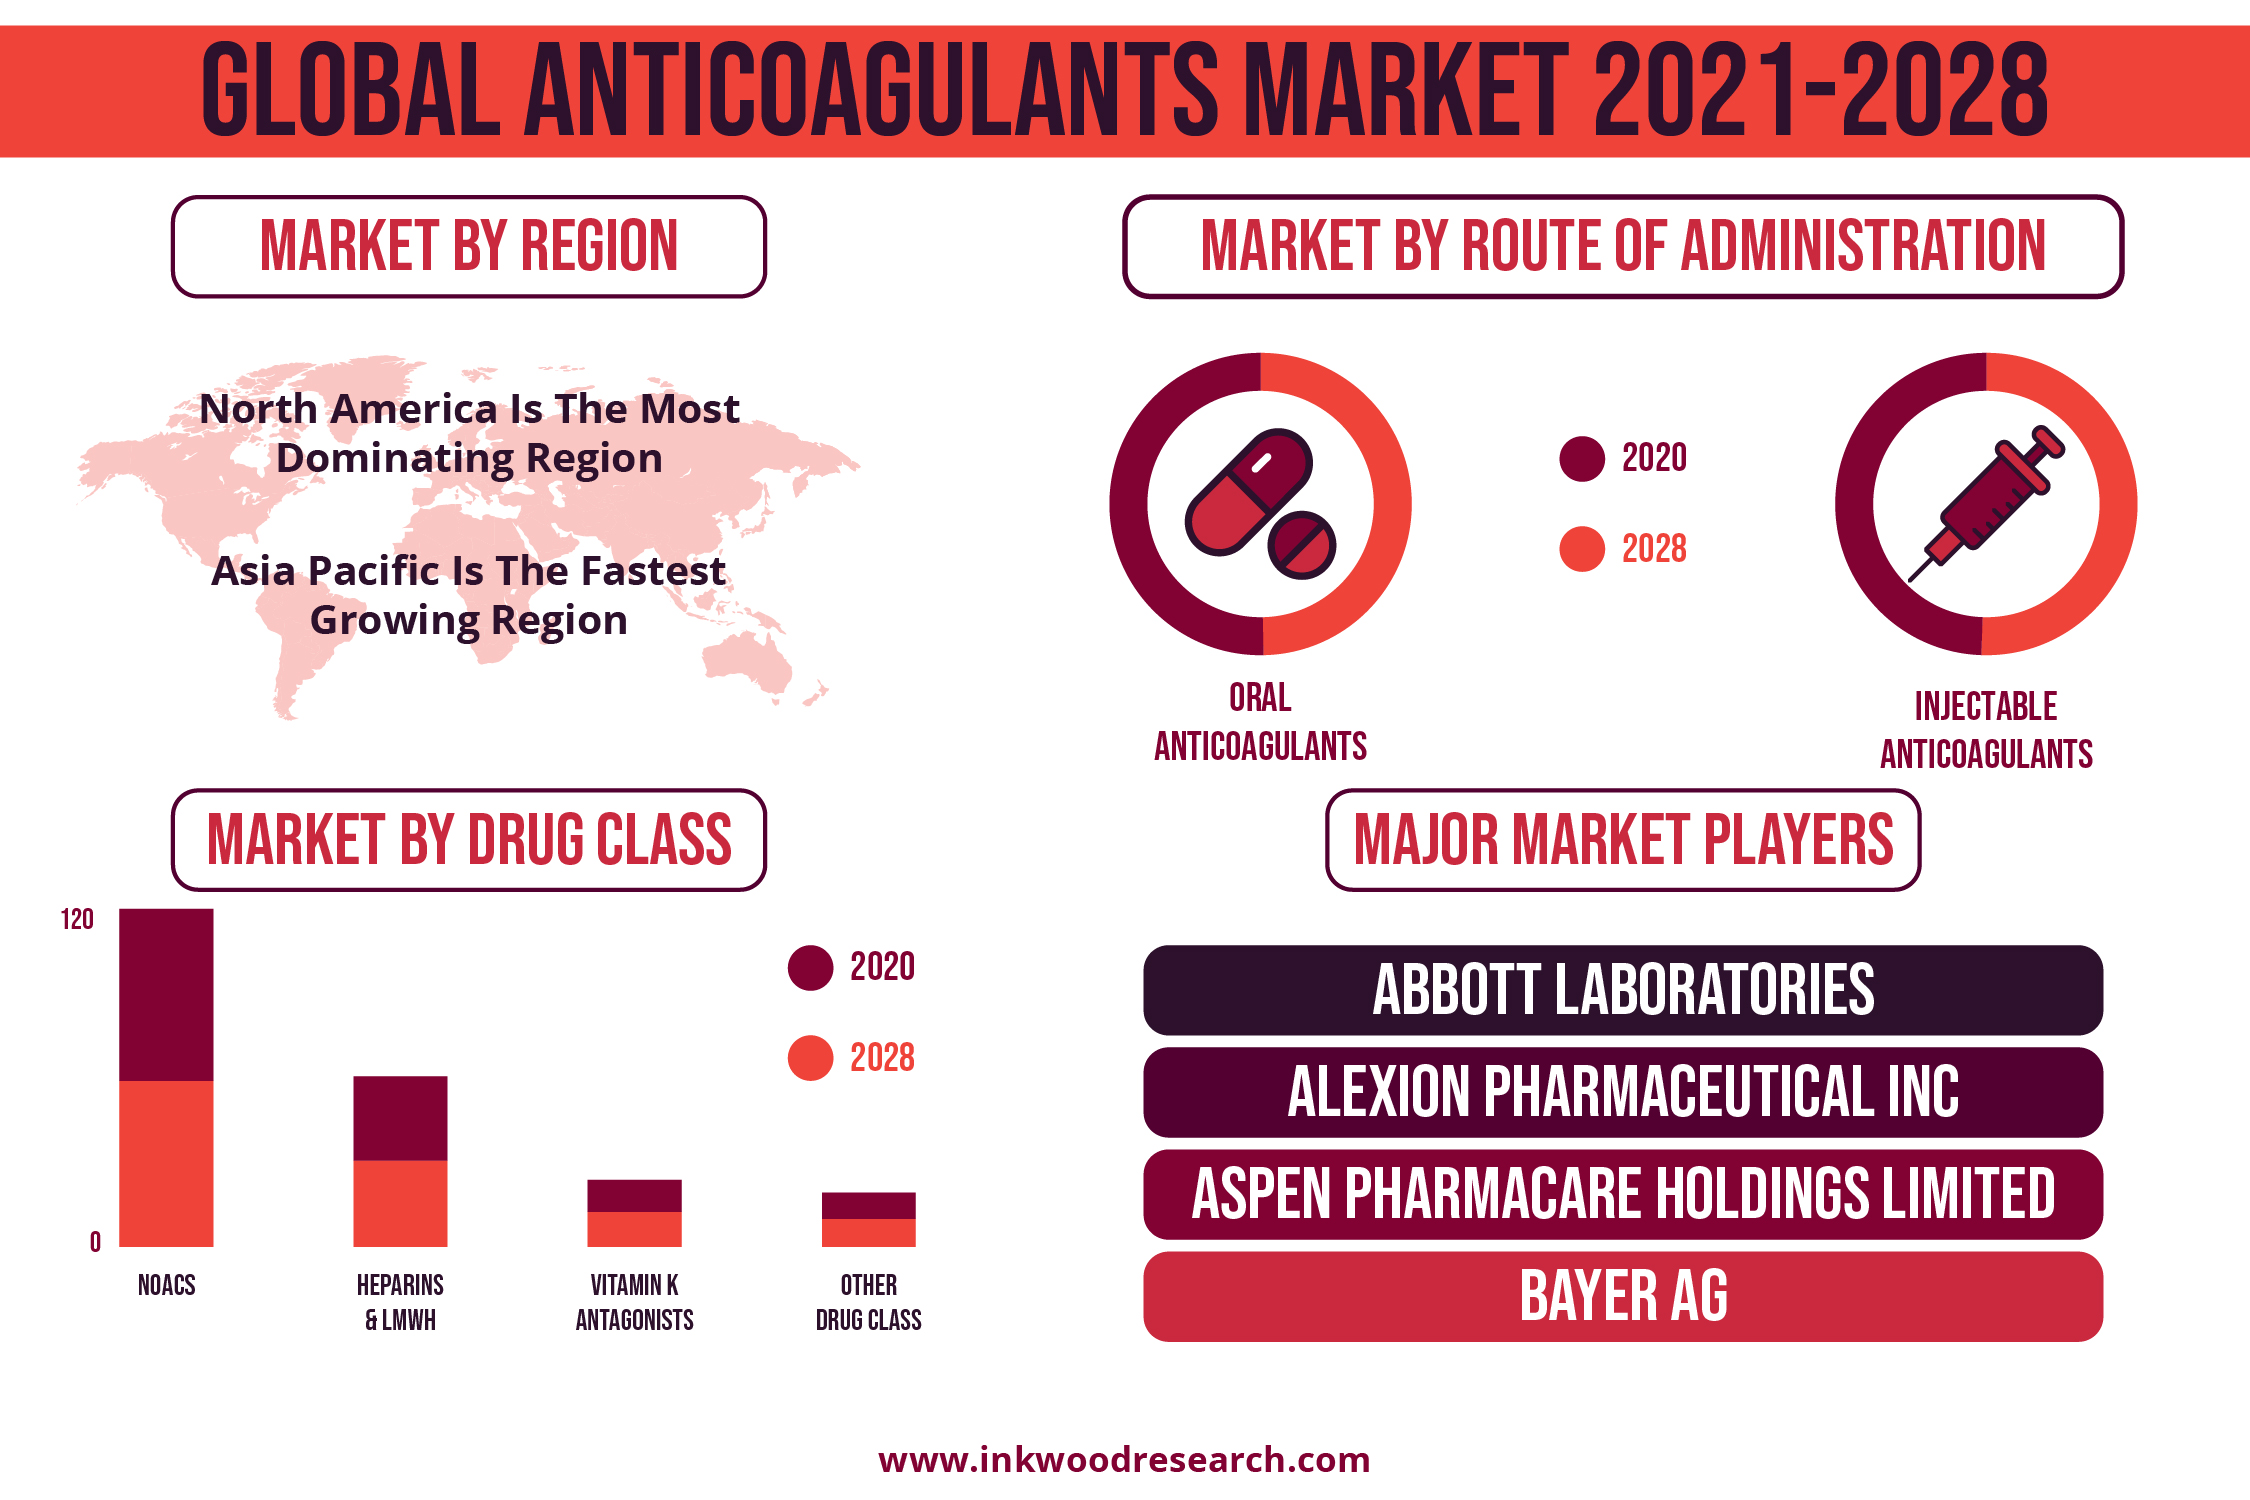 Increasing Approval of NOACs to Push the presence of the Anticoagulants Market Worldwide